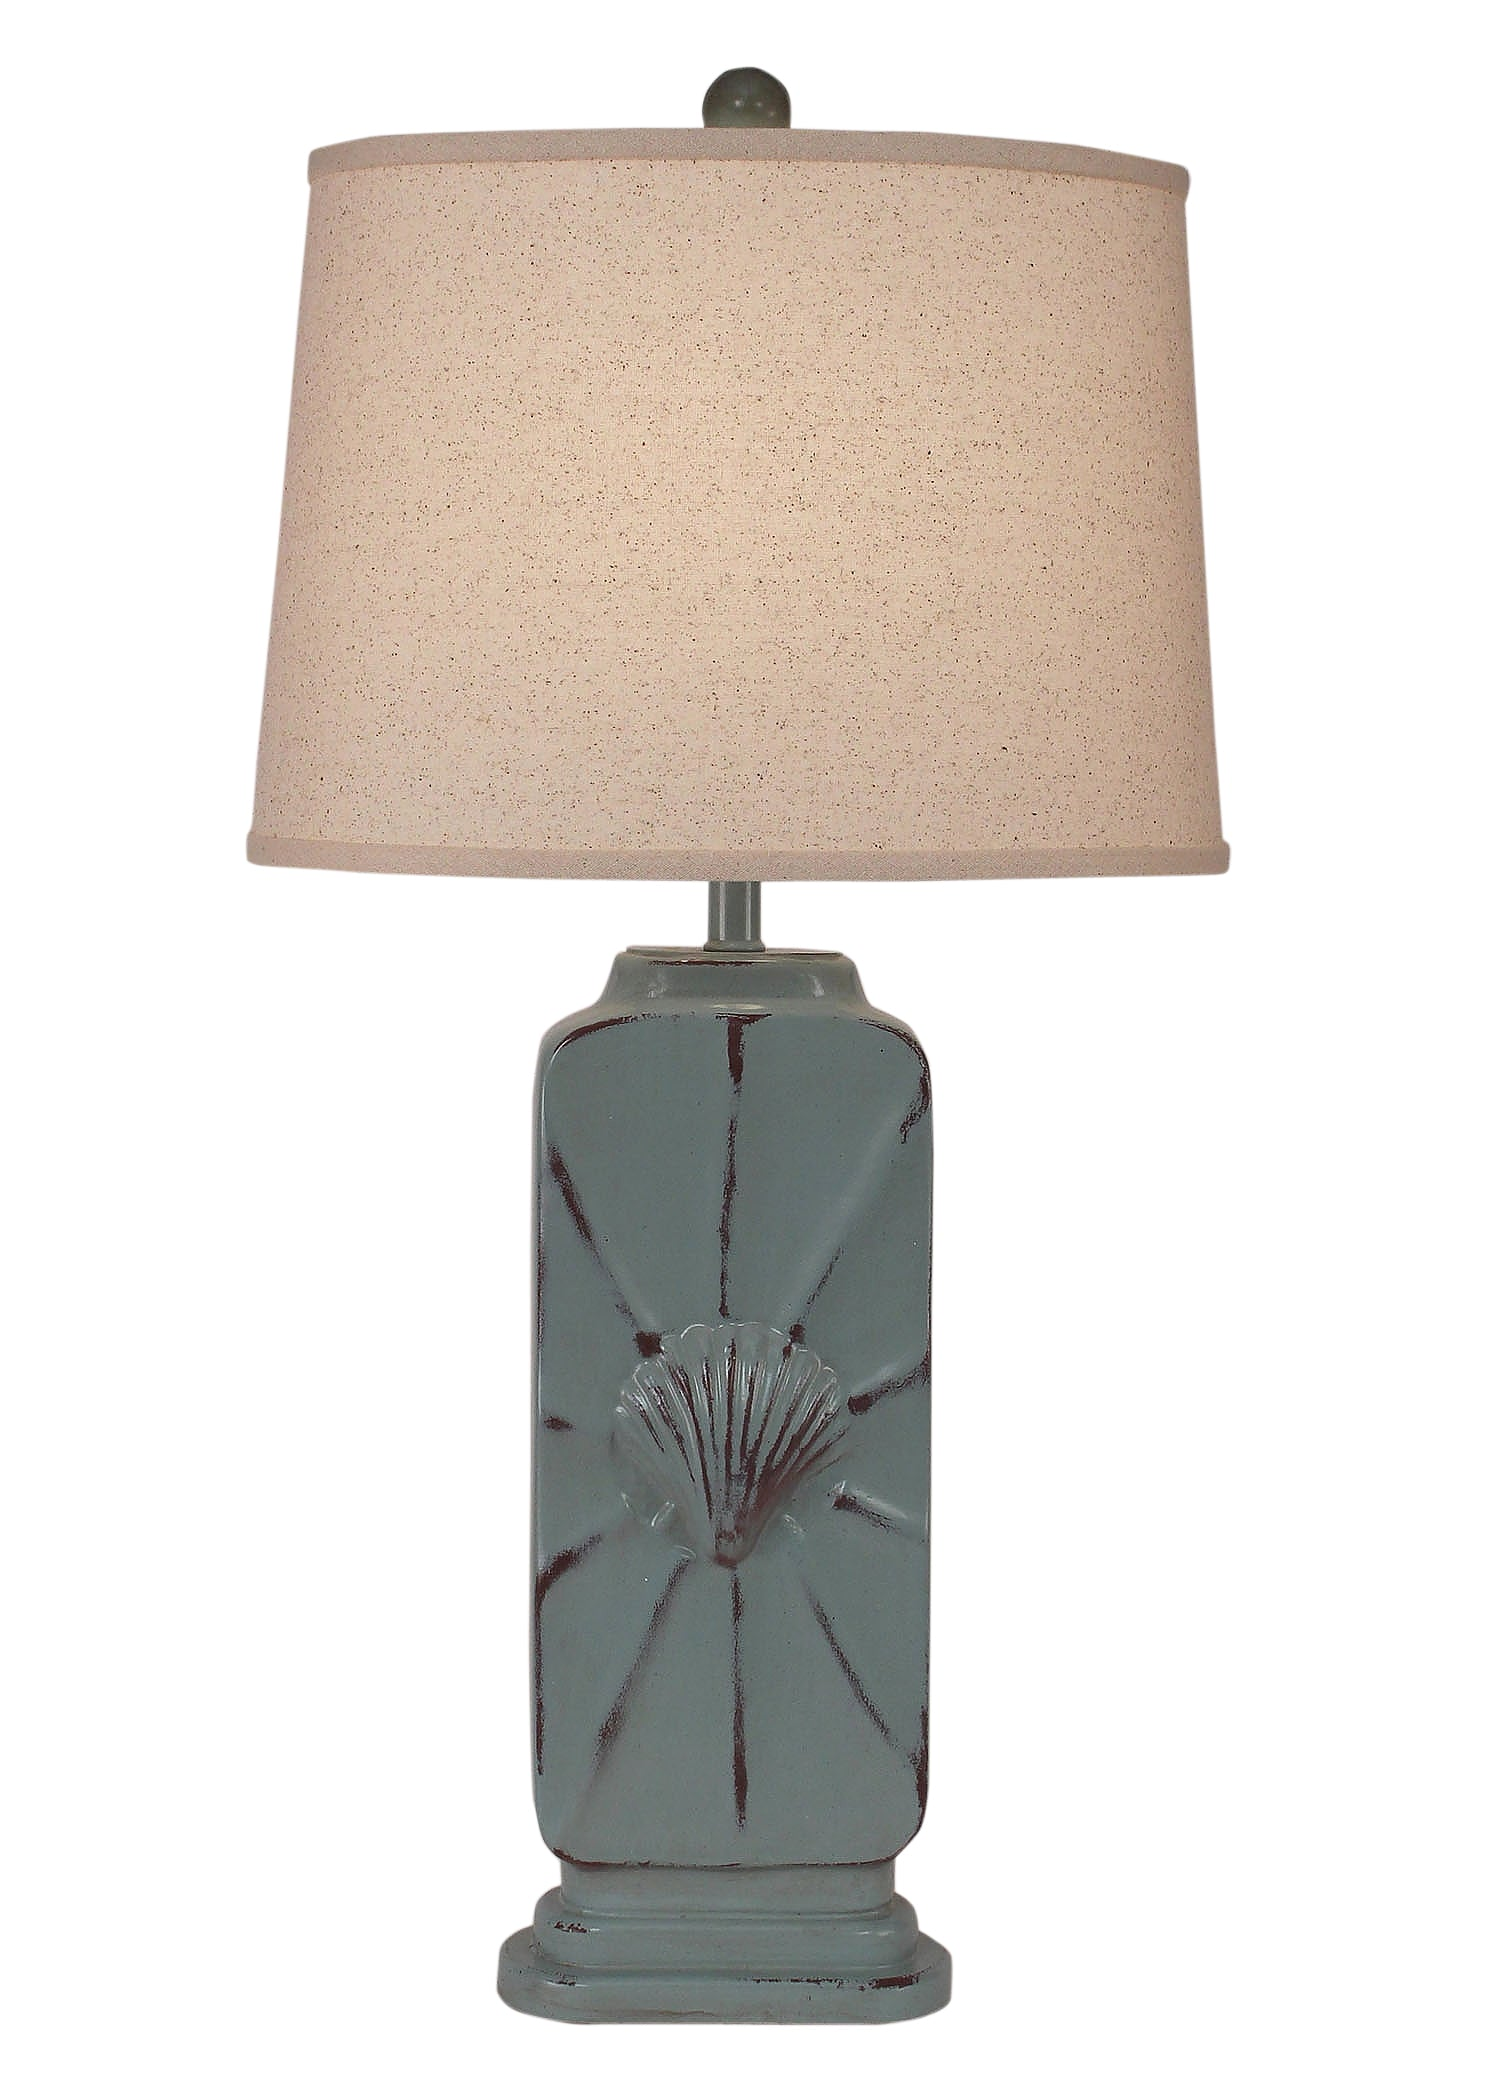 Distressed Seamist Twistsed Tall Rectangle Table Lamp w/Shell Accent - Coast Lamp Shop